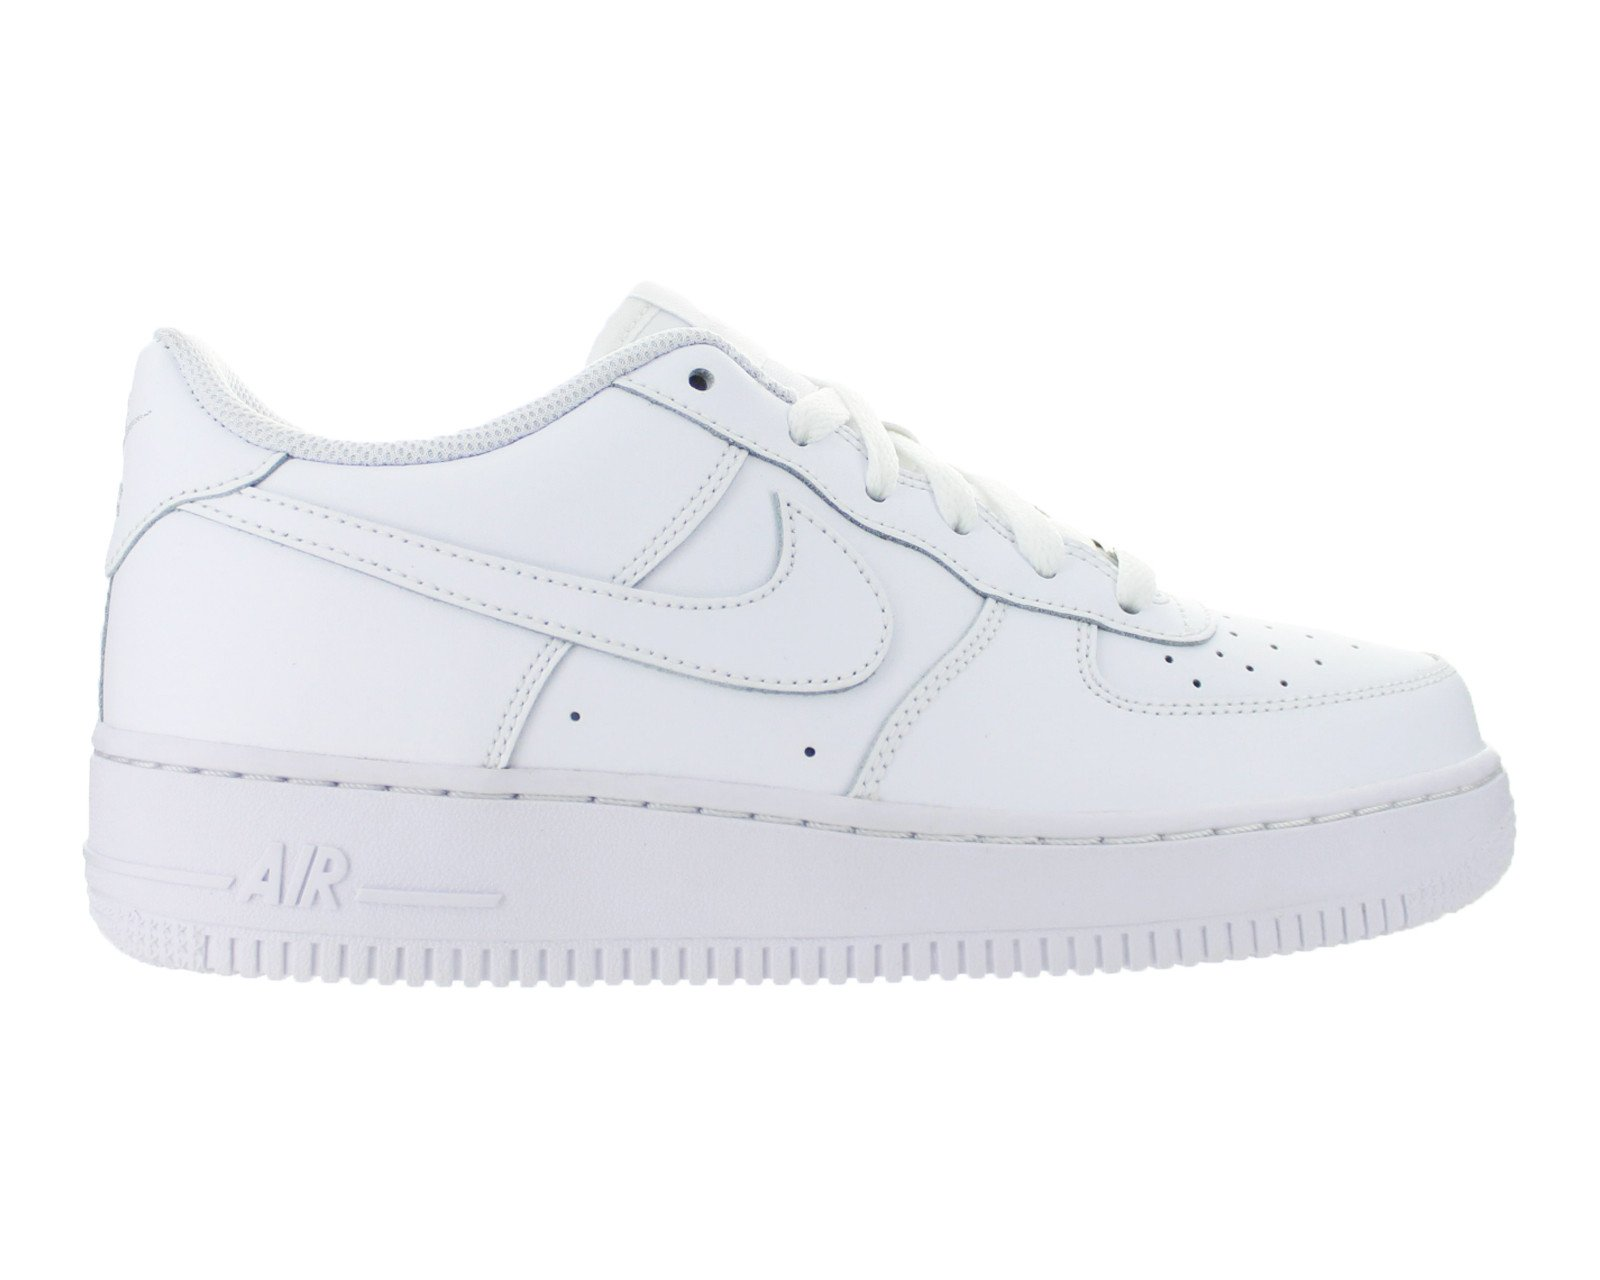 Nike - Nike Air Force 1 Low [GS] White